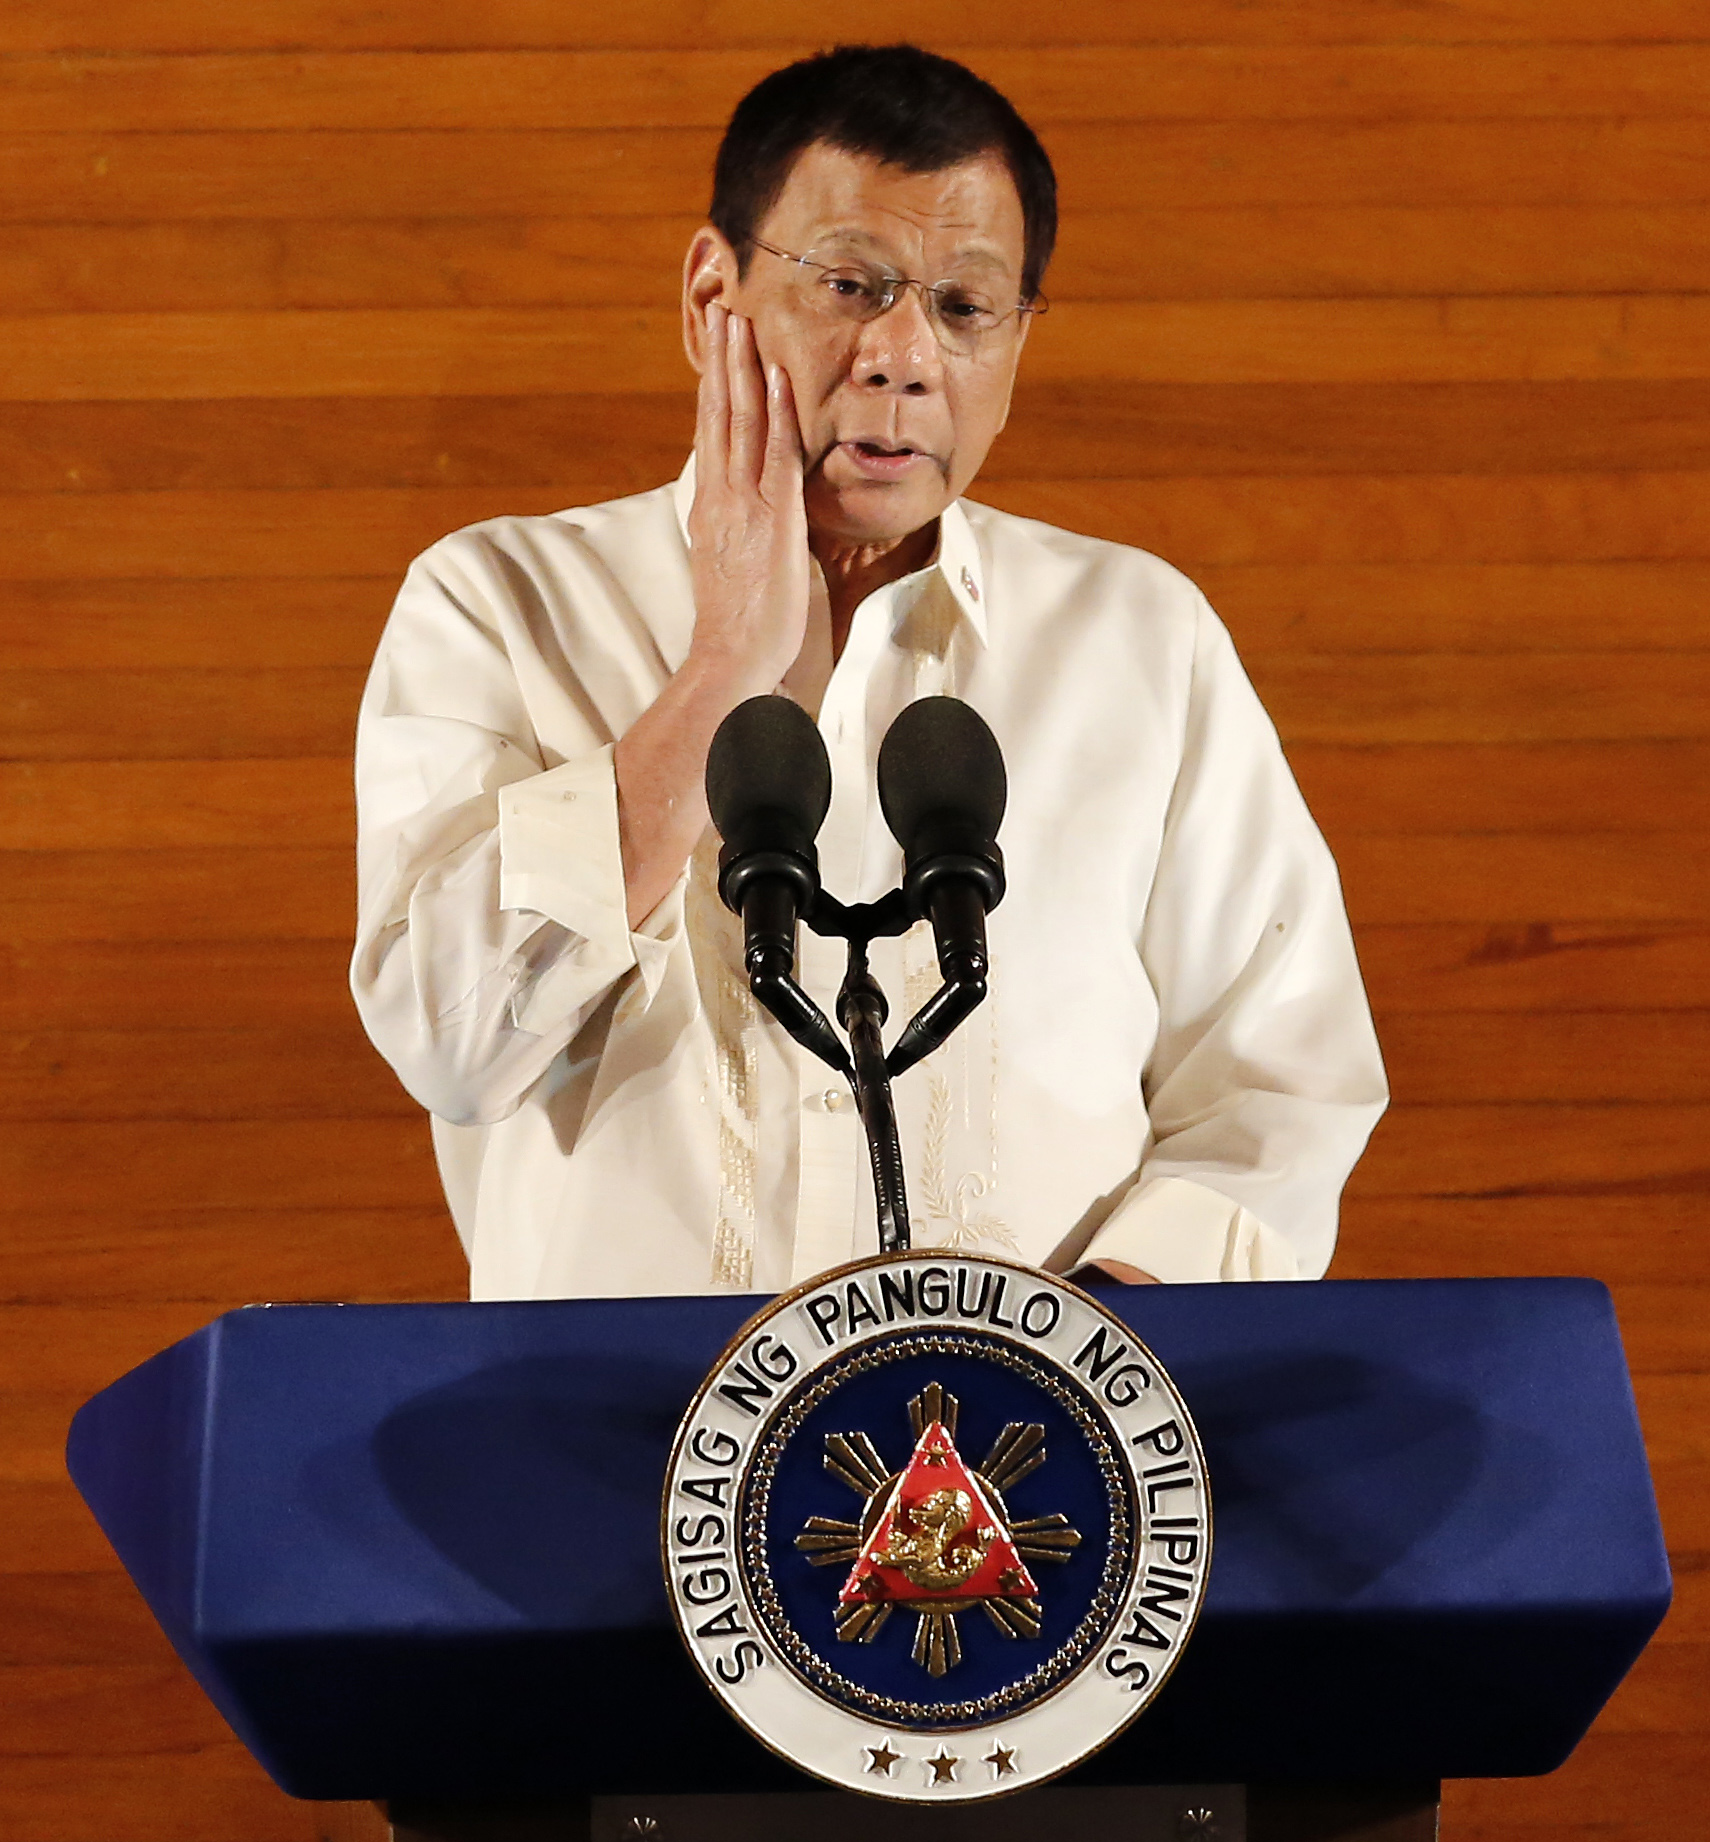 SONA 2016. Filipino President Rodrigo Duterte delivers his first State of the Nation Address during the opening of the 17th Congress at the House of Representatives in Quezon City, East of Manila, Philippines July 25, 2016. Photo by Francis R. MALASIG/EPA